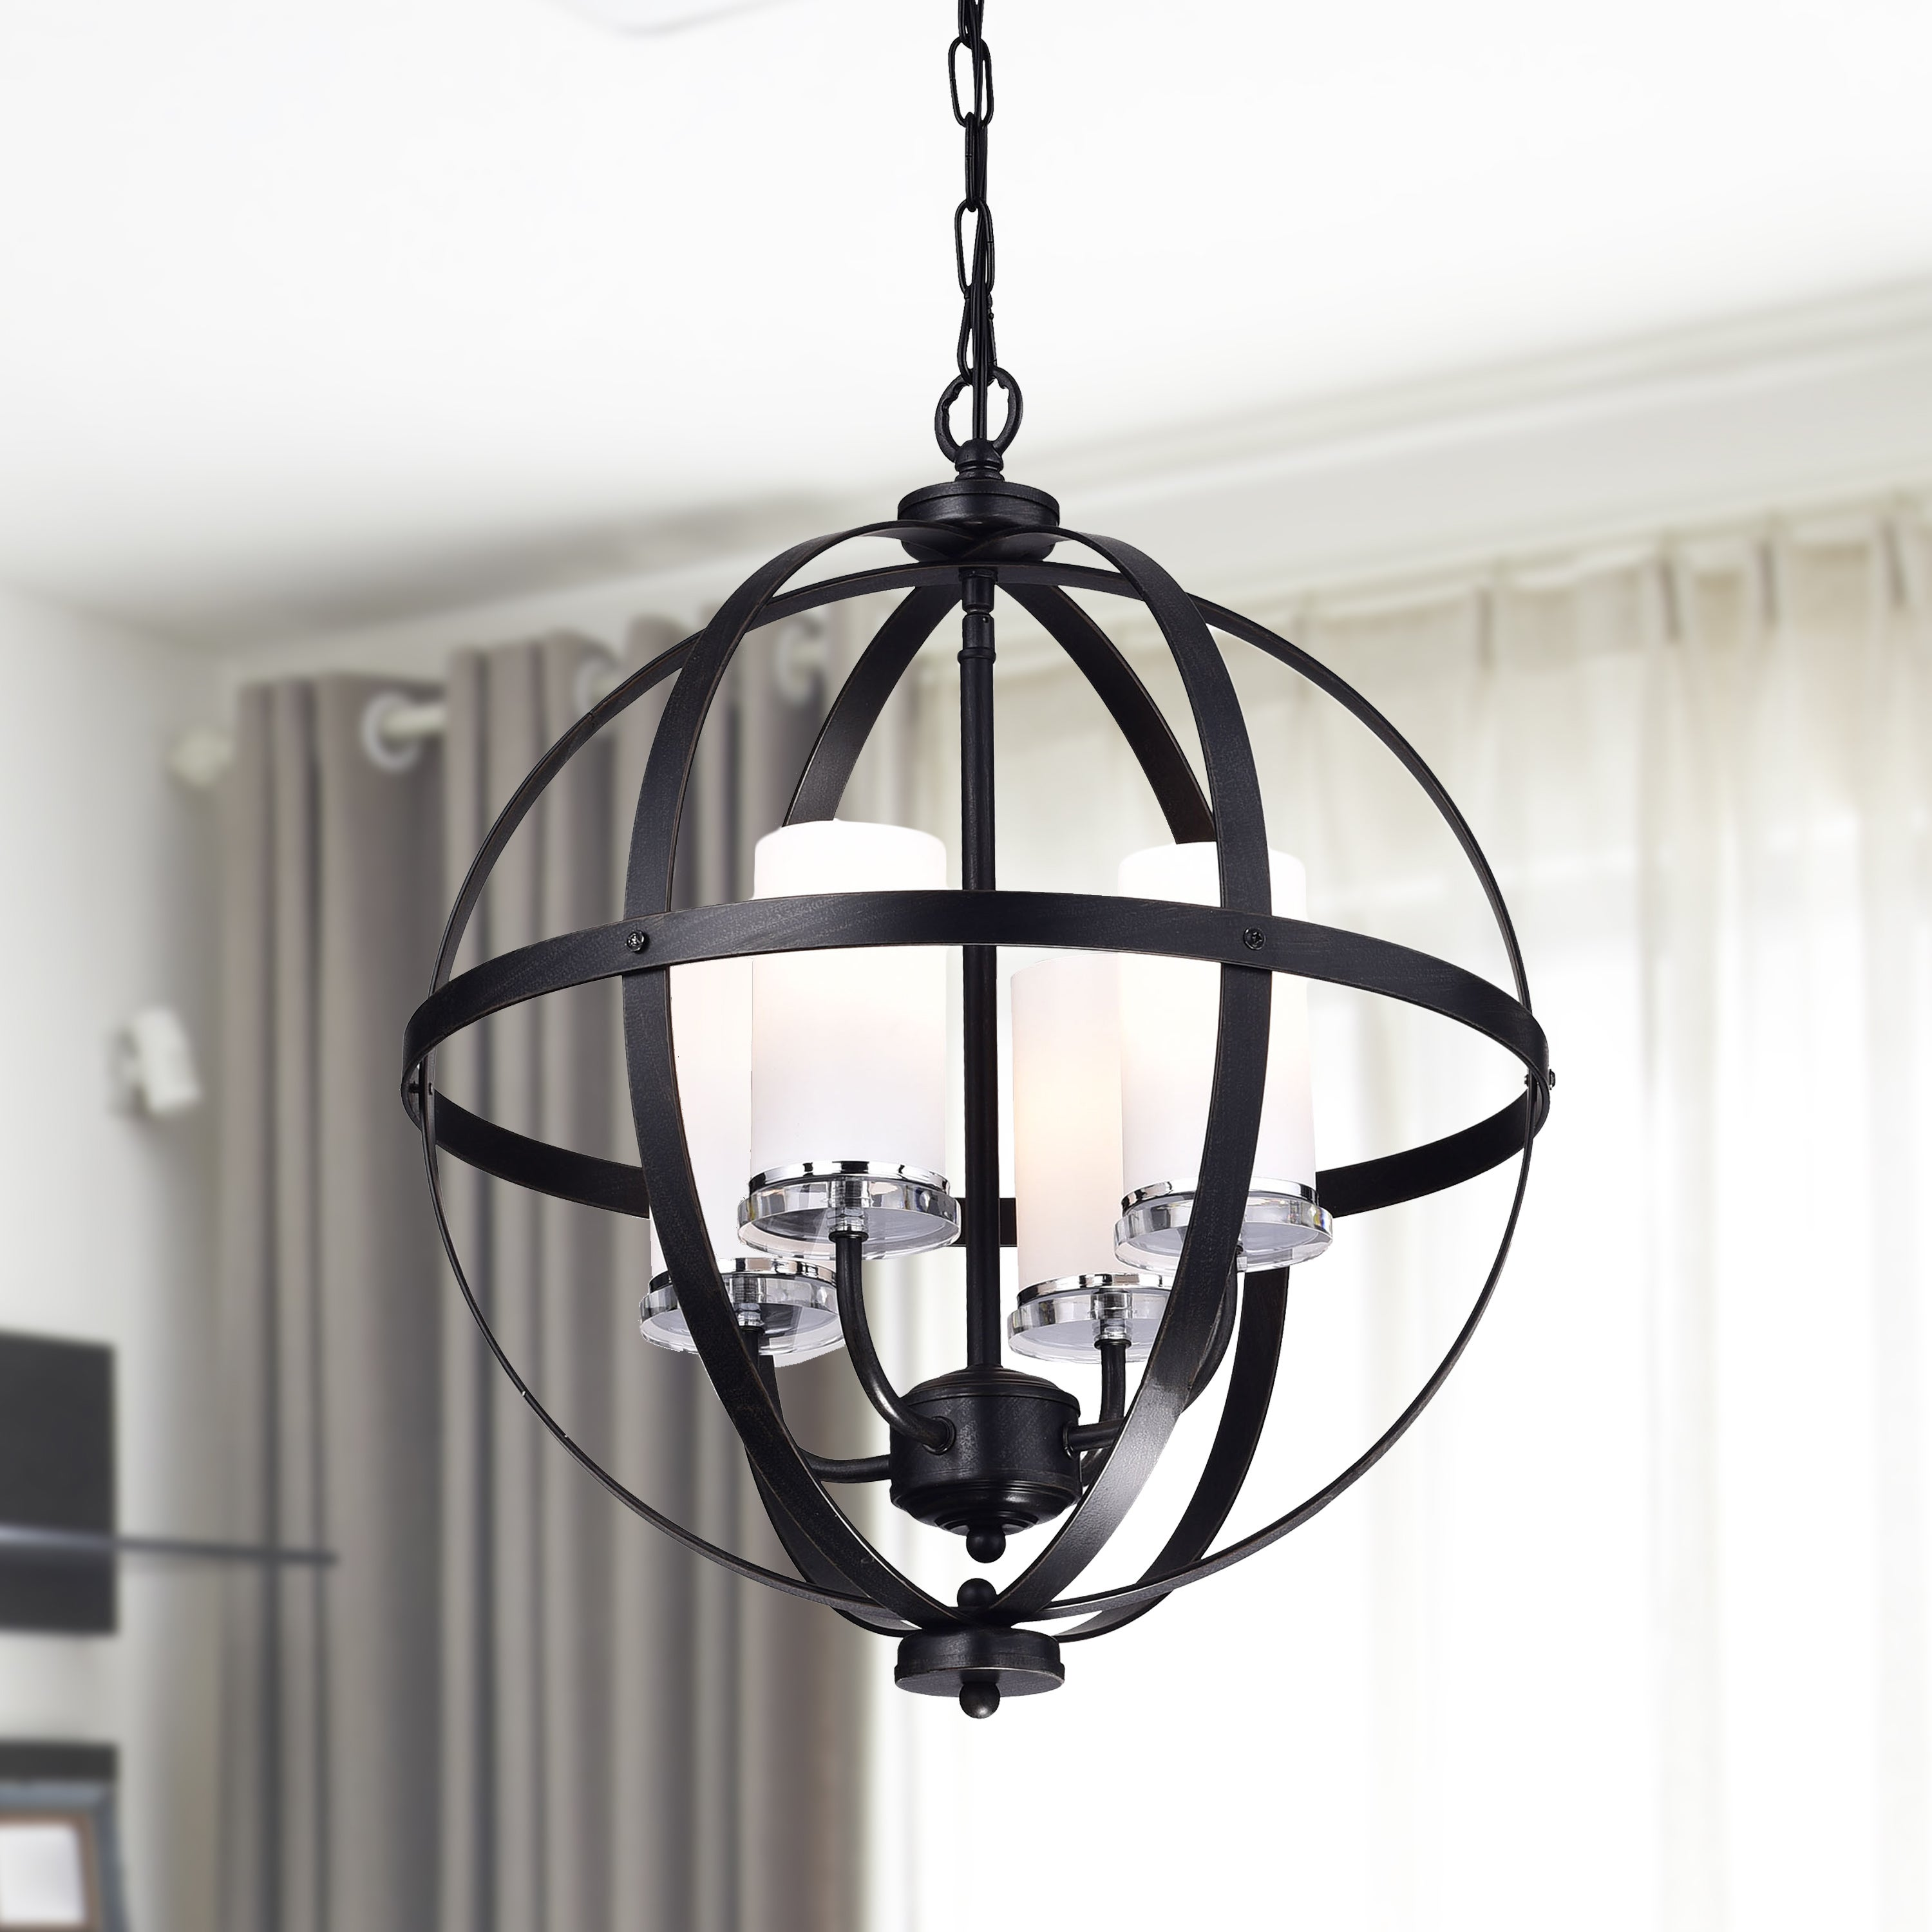 Benita Antique Black Iron Orb Chandelier With Glass Globe